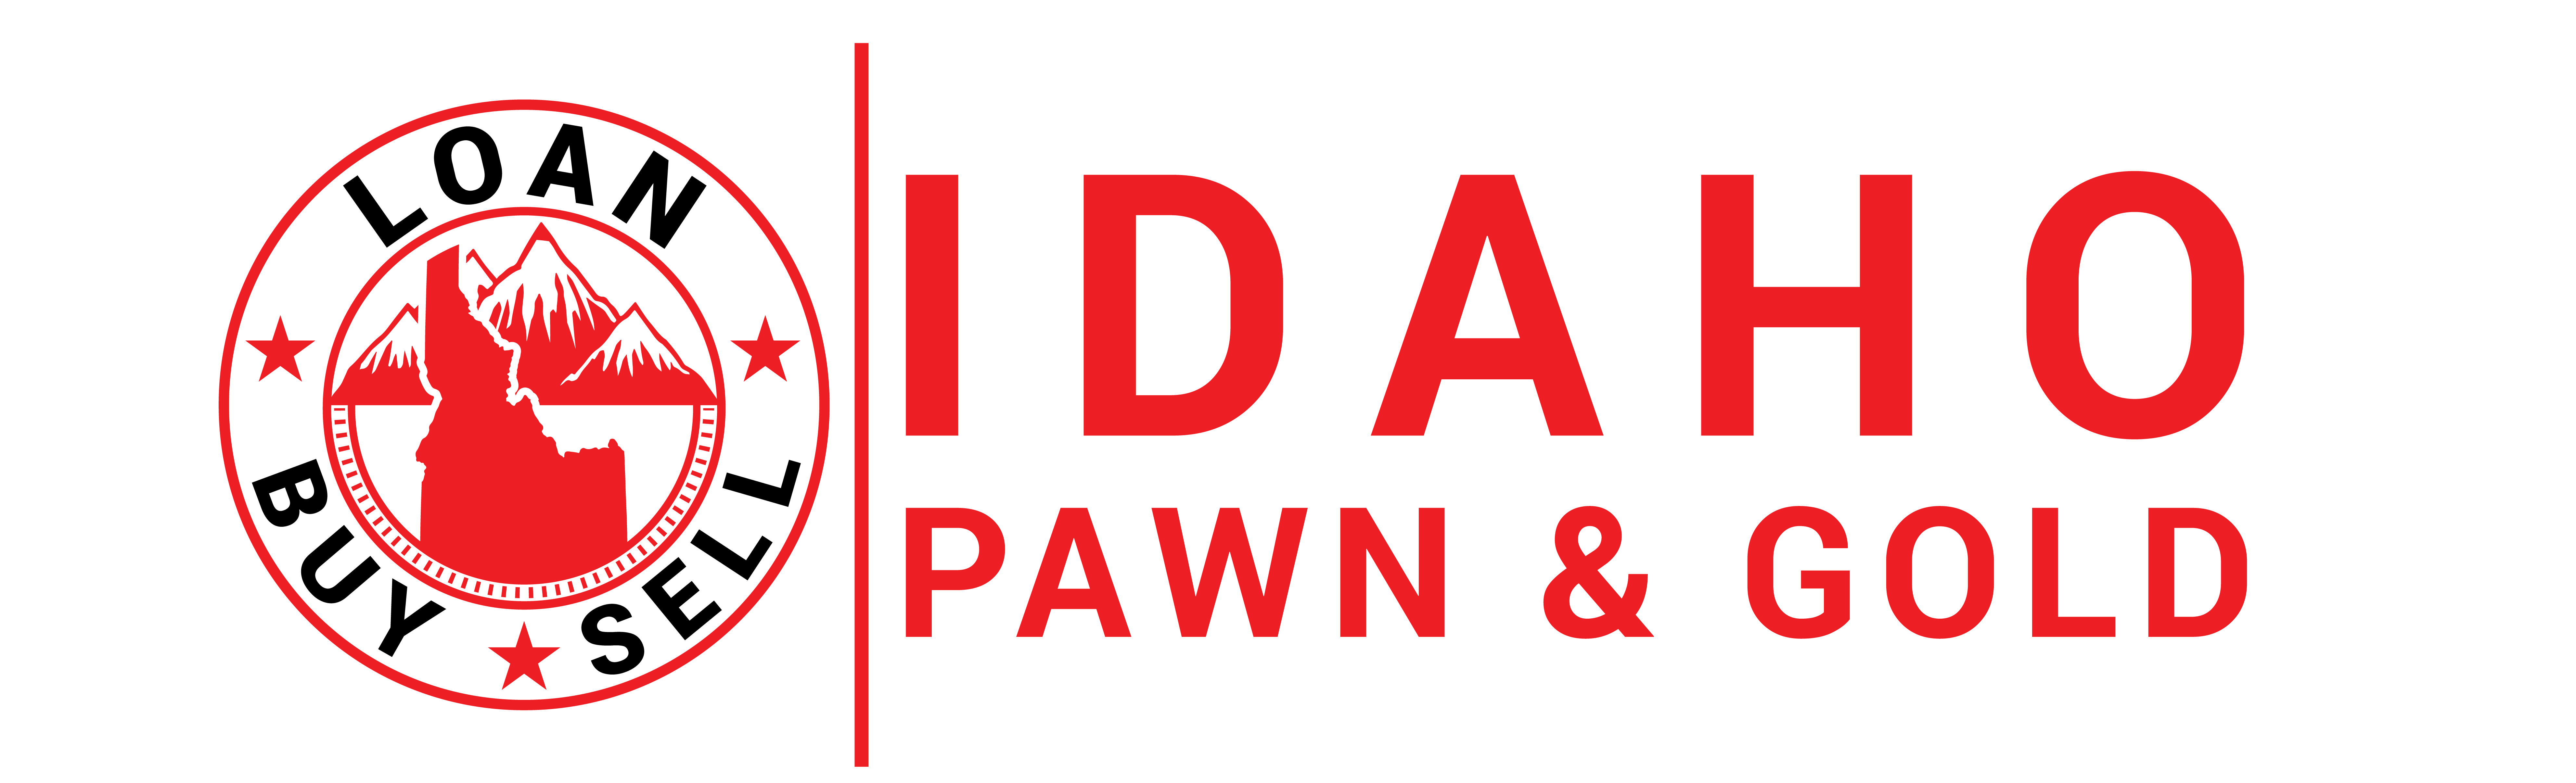 Keep Calm and Pawn on: Introducing Idaho Pawn & Gold a New Boise Idaho Pawn Shop, Sharing a Start-Up Experience and Their Founding Principles